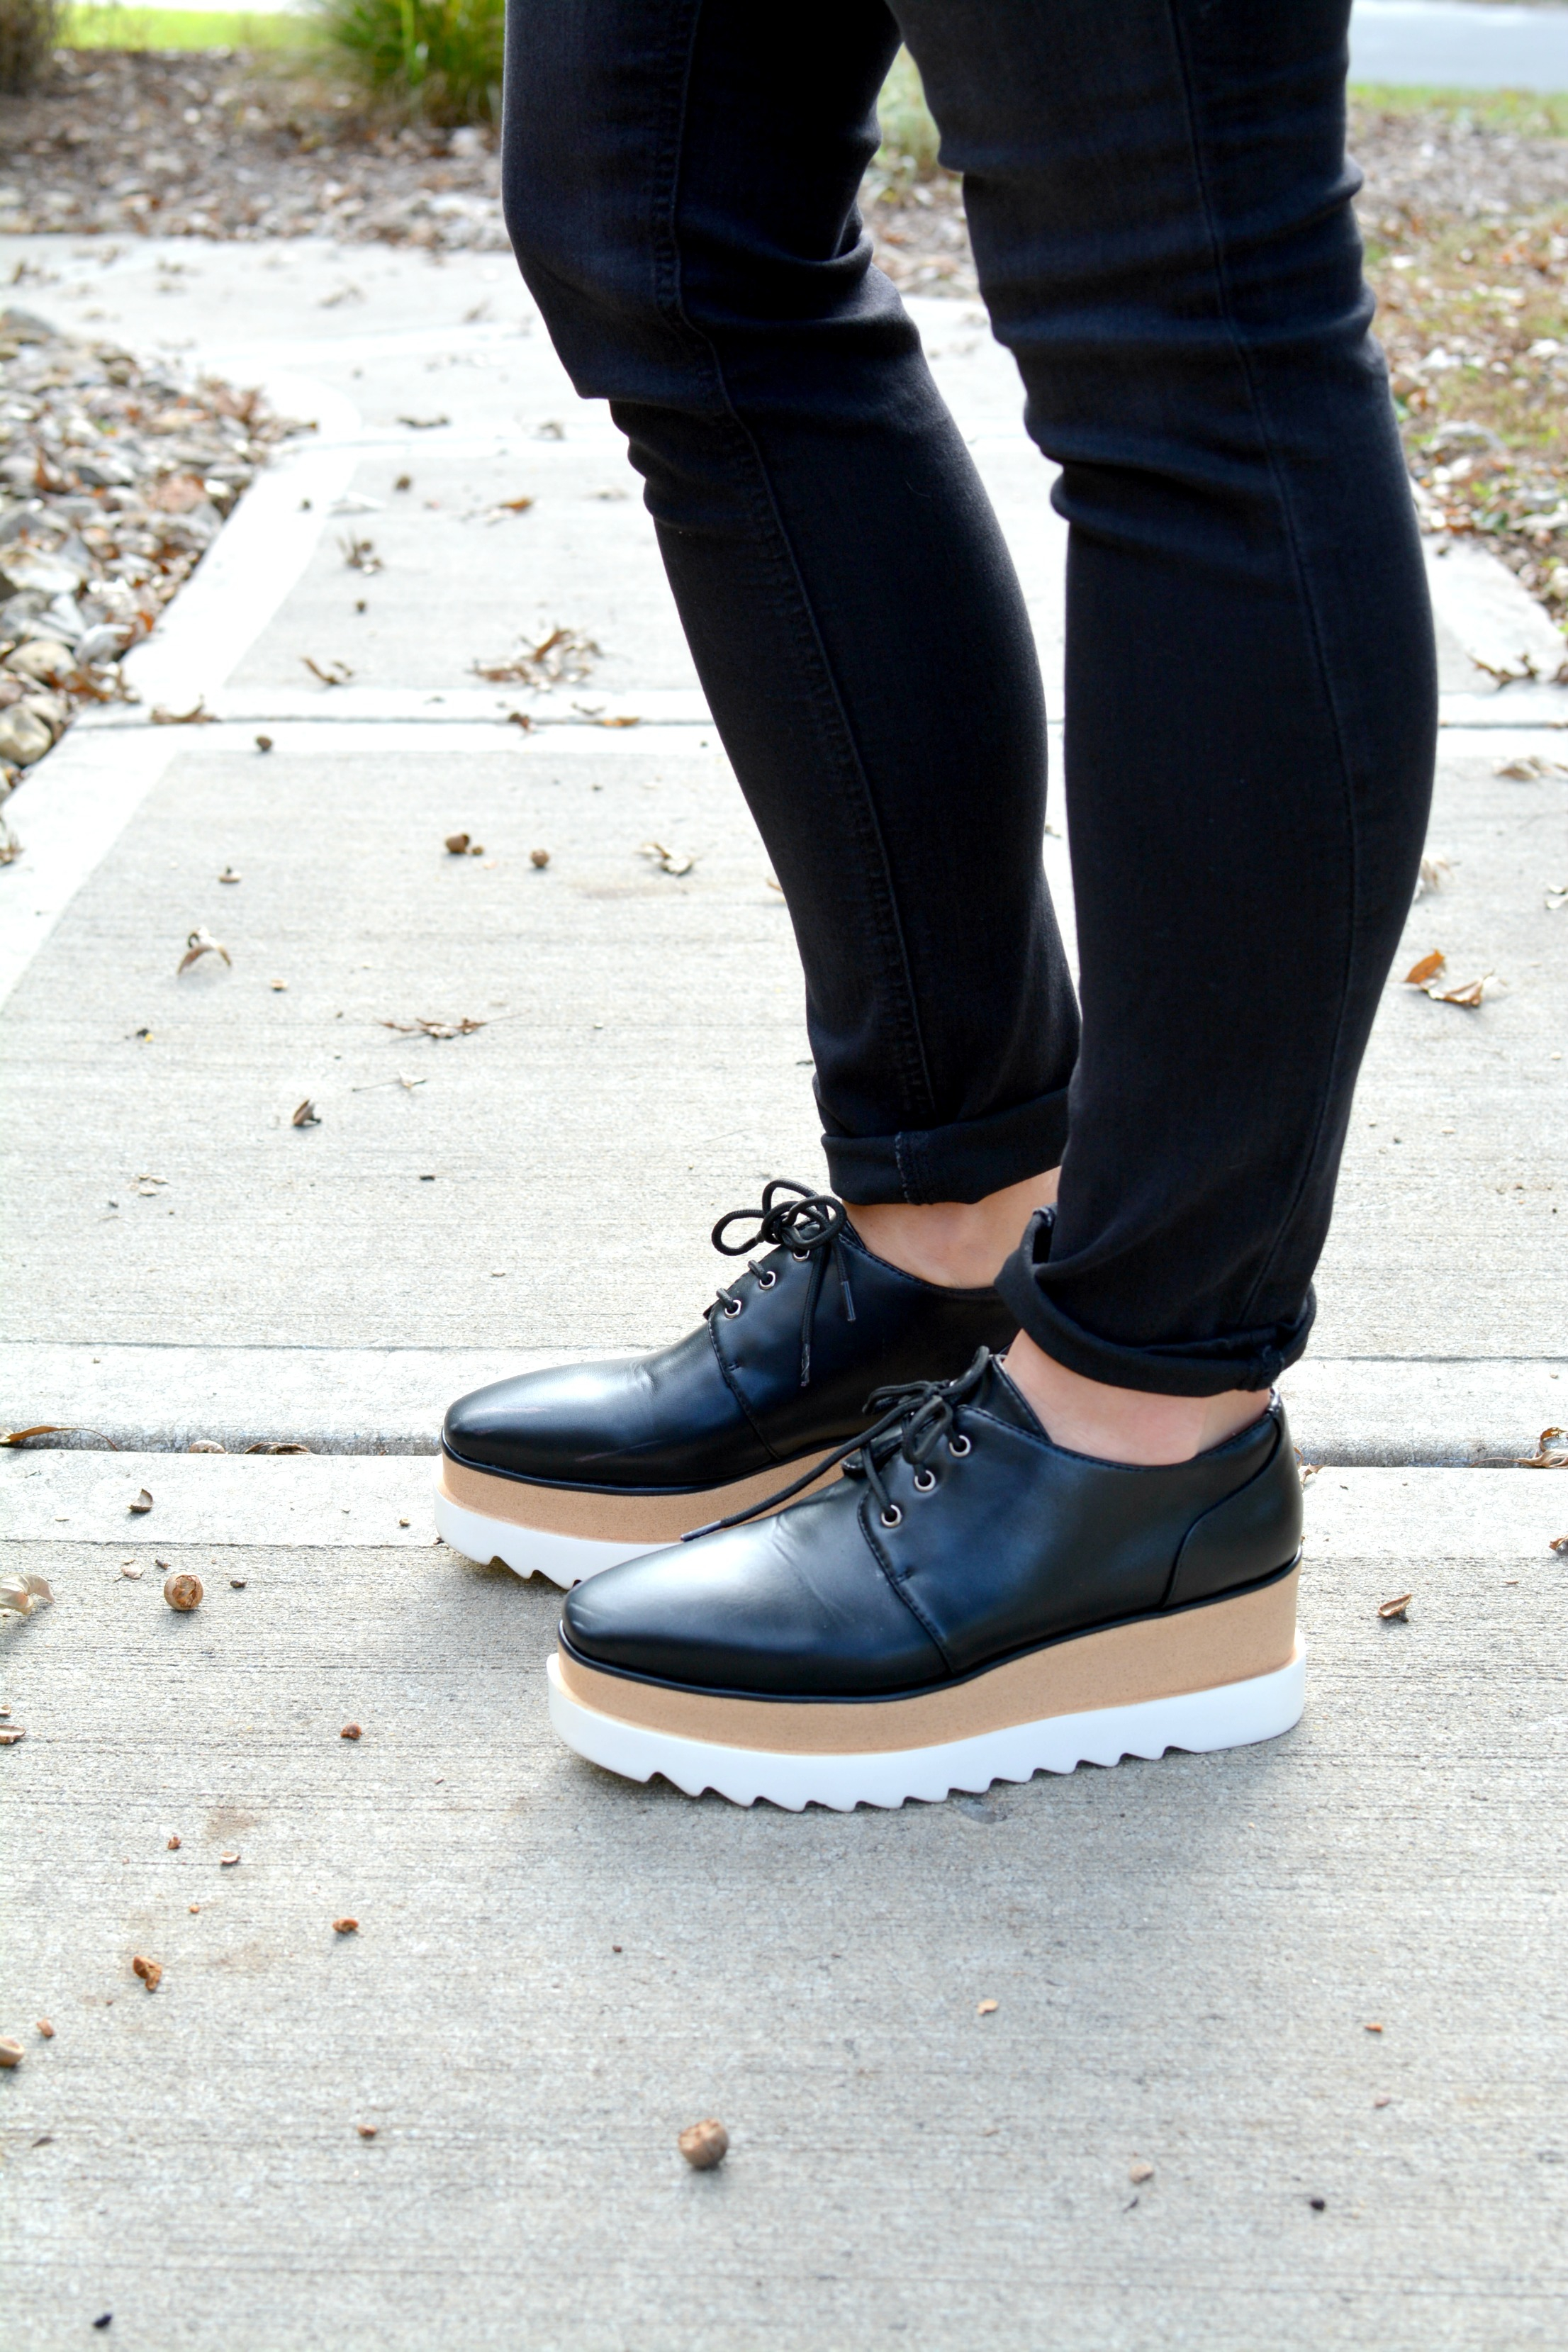 Ashley from LSR in black jeans and flatforms